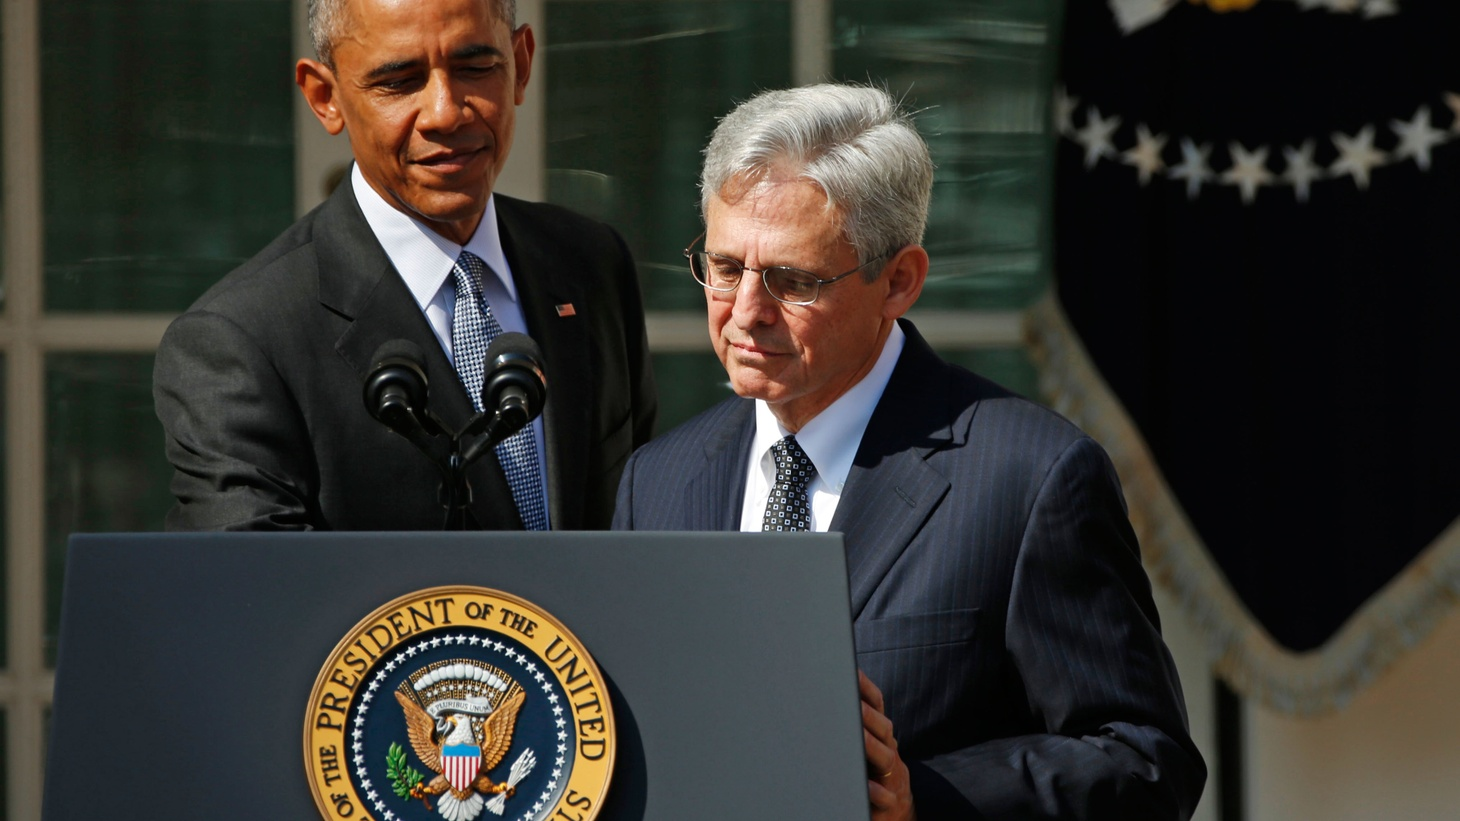 Merrick Garland, President Obama's pick to fill Antonin Scalia's seat on the Supreme Court, is a moderate judge from the D.C. Circuit Court. What else do we know about him, as a justice and as a person?